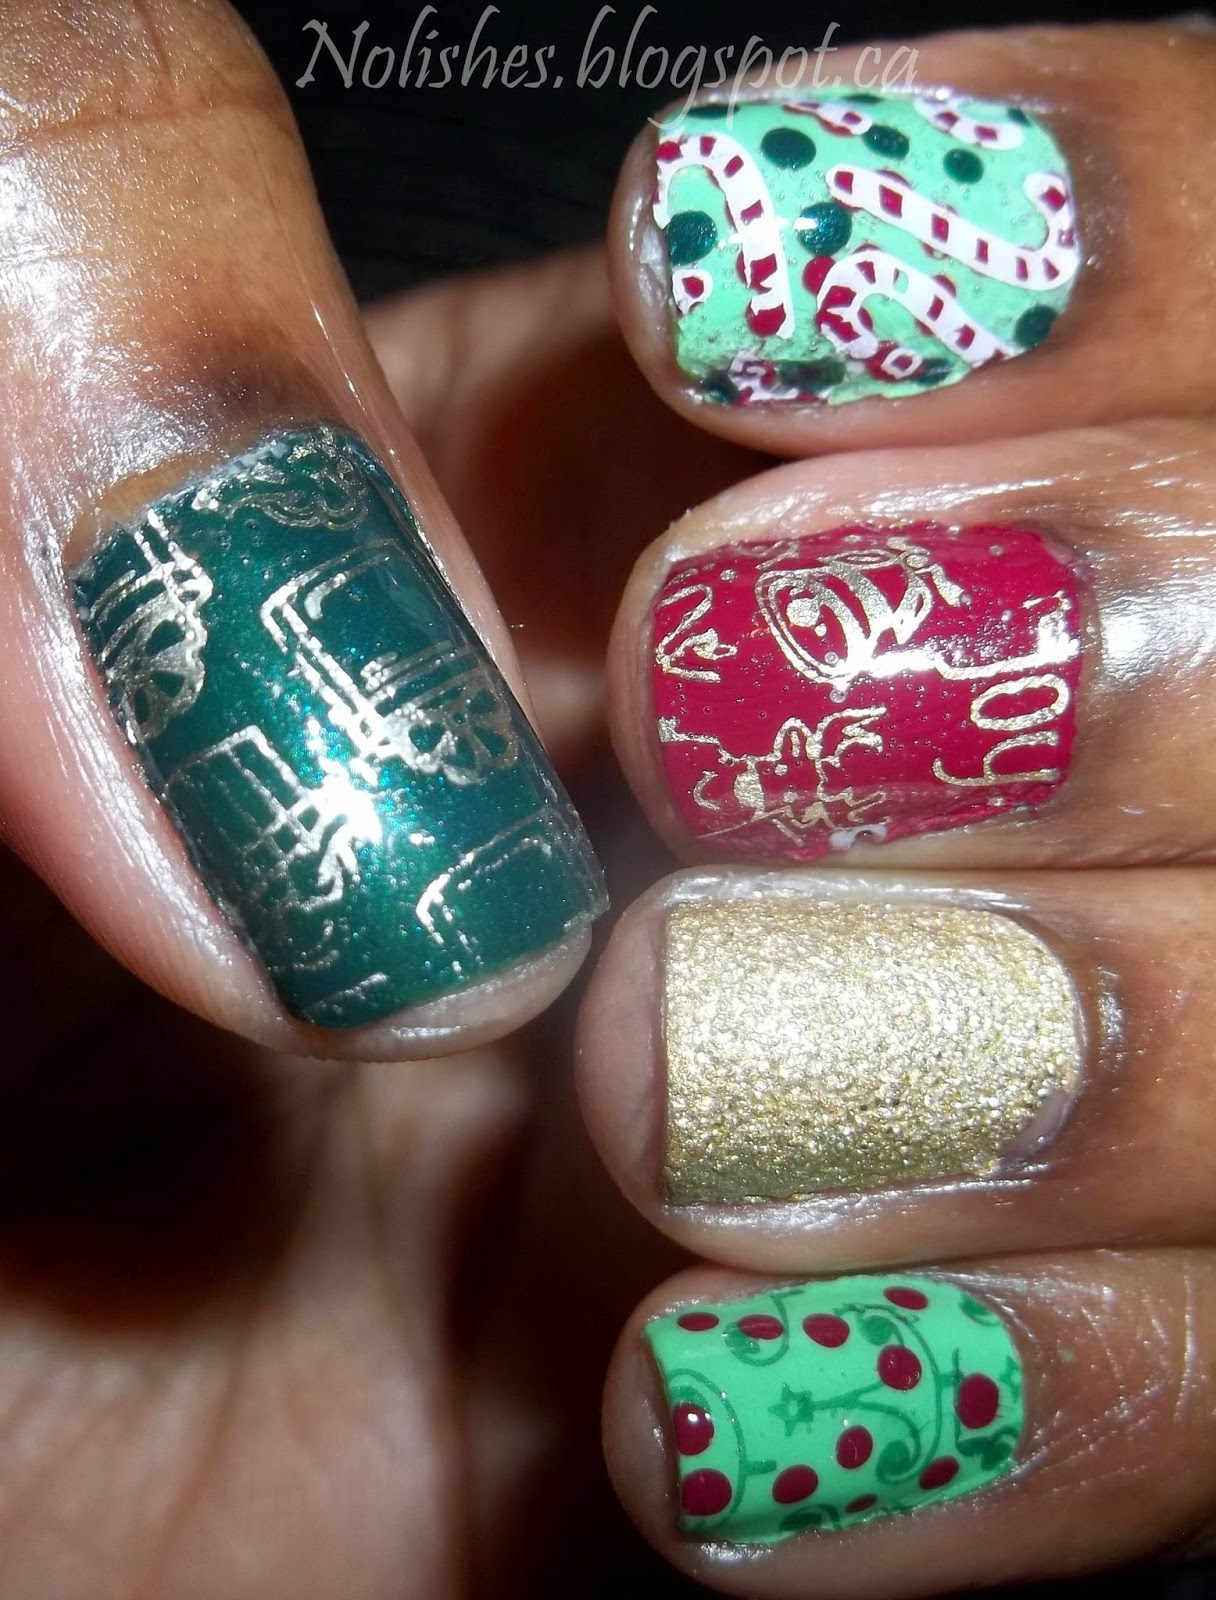 Christmas Themed Nail stamping manicure using light and dark green, red, gold, and white nail polishes. Stamped with images of presents, candy canes, bells, and trees.